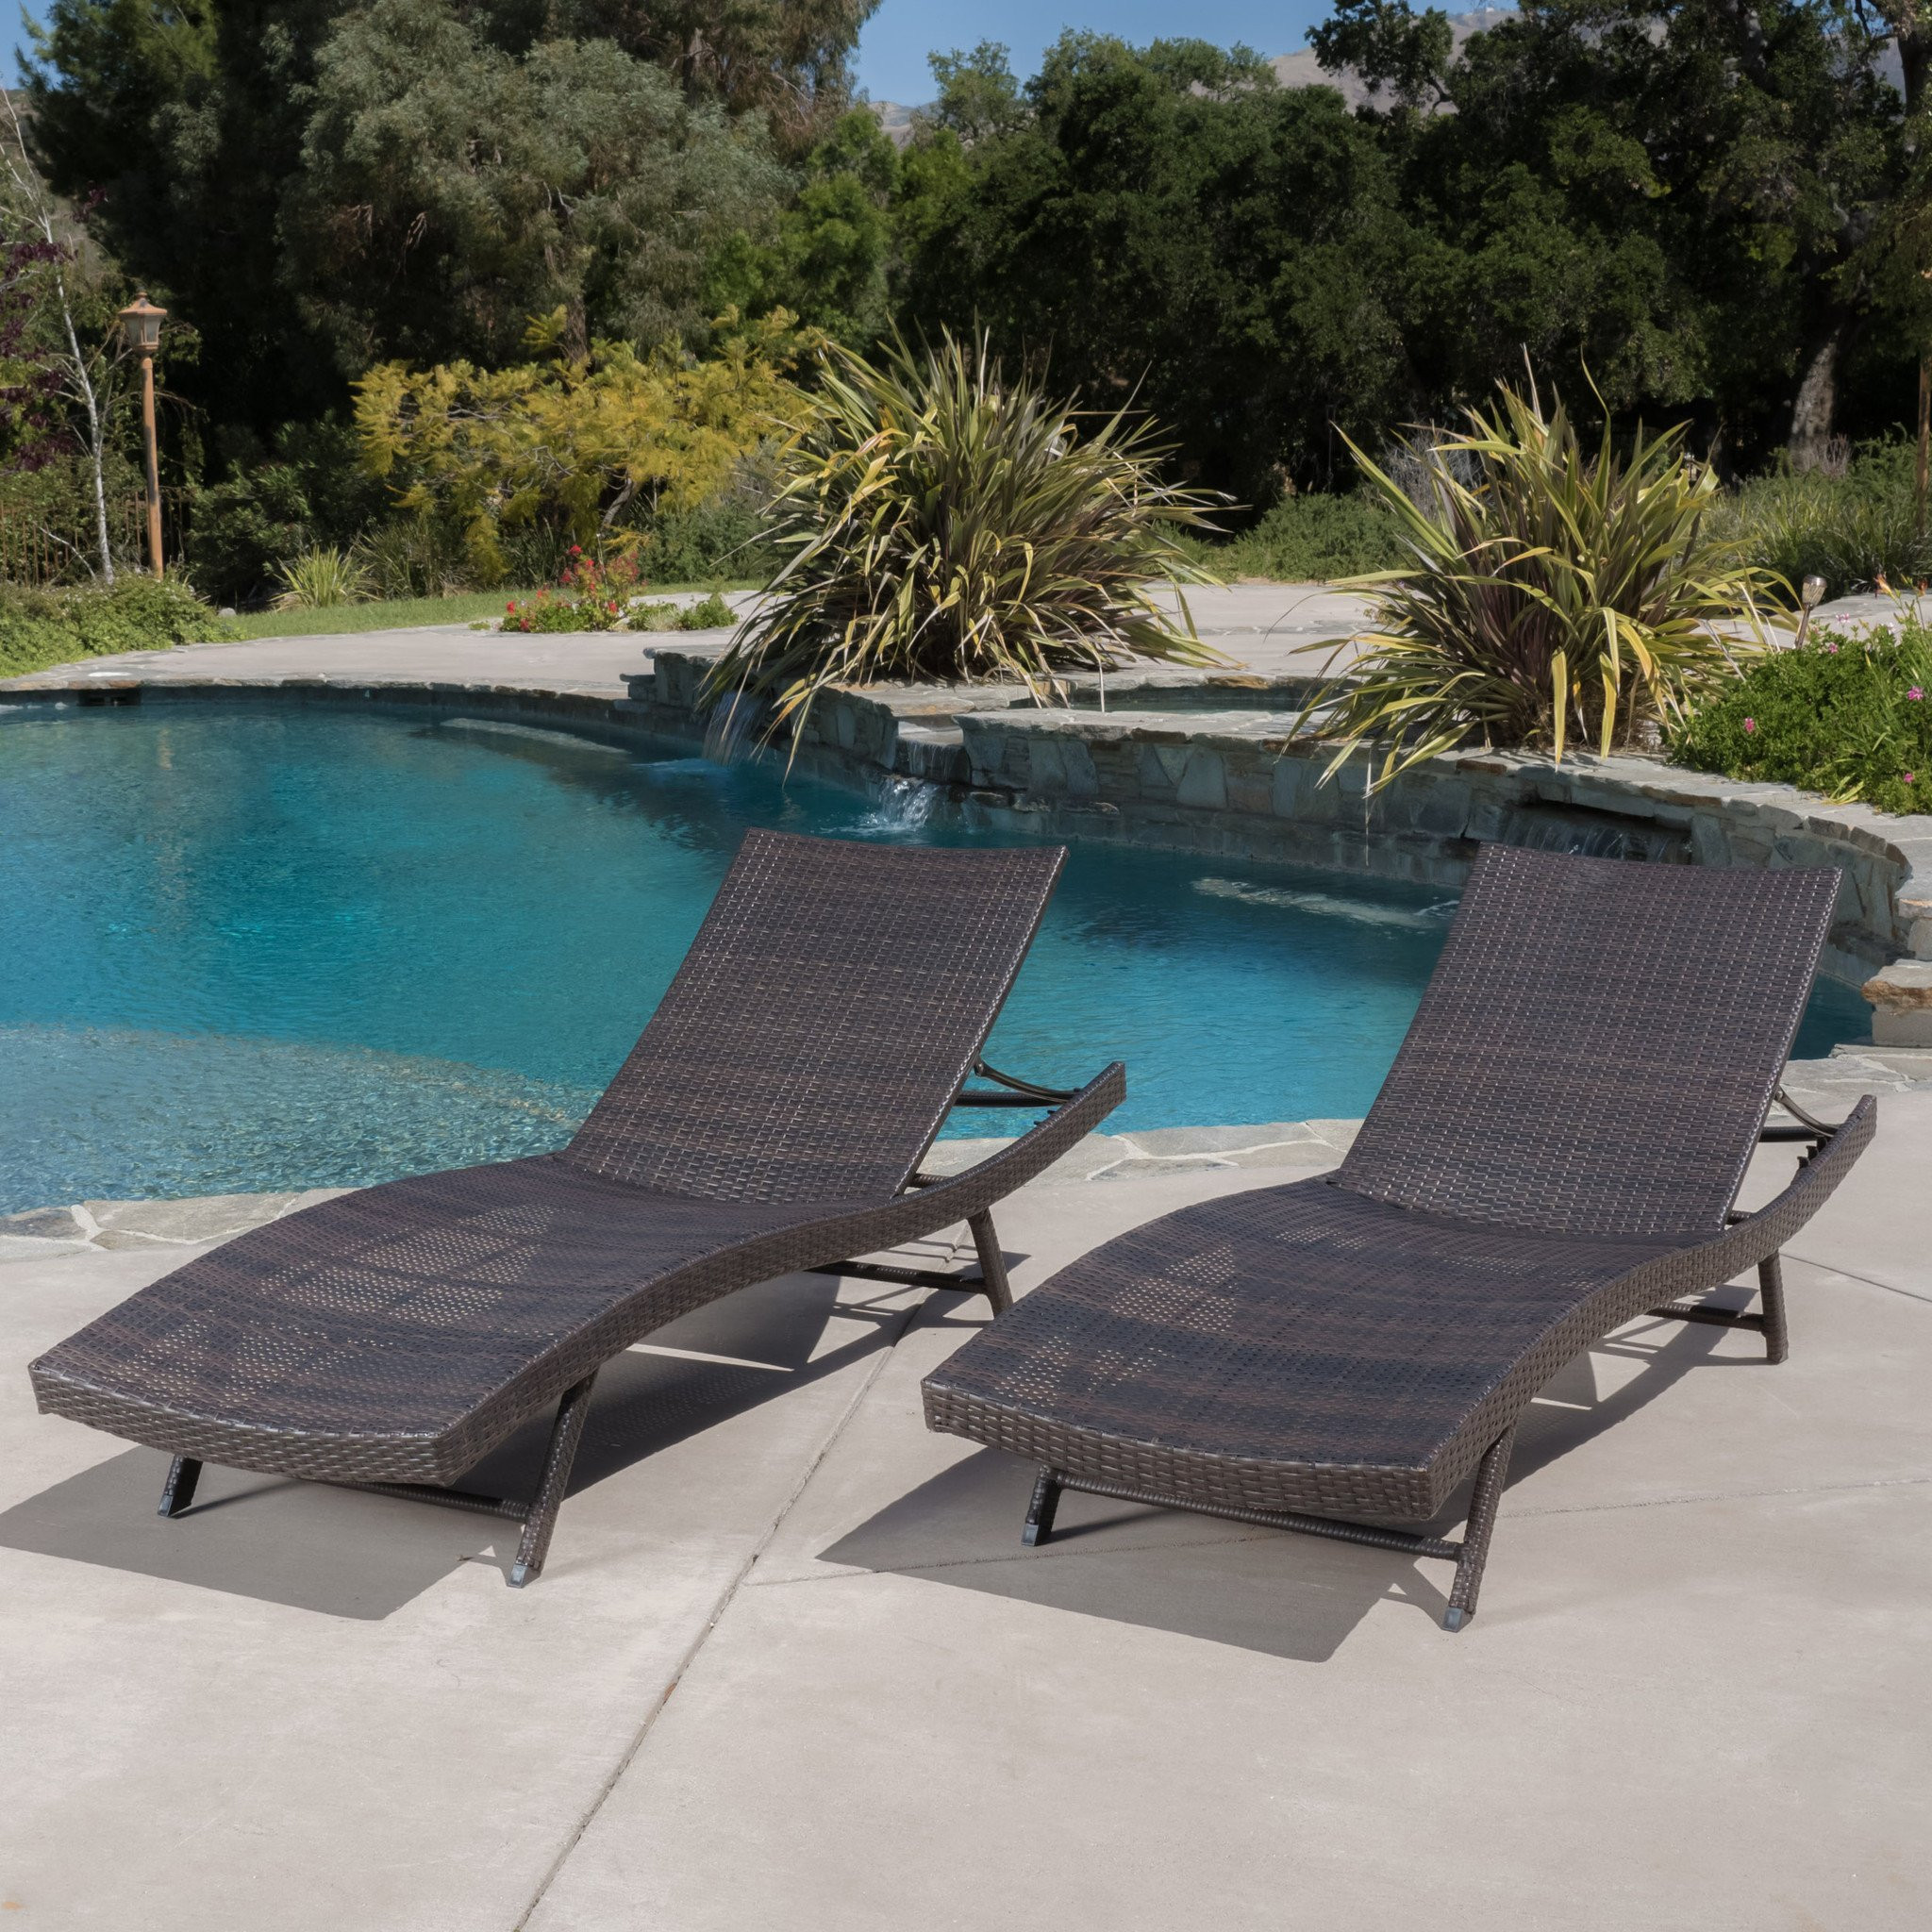 Eliana Outdoor Brown Wicker Chaise Lounge Chairs (...